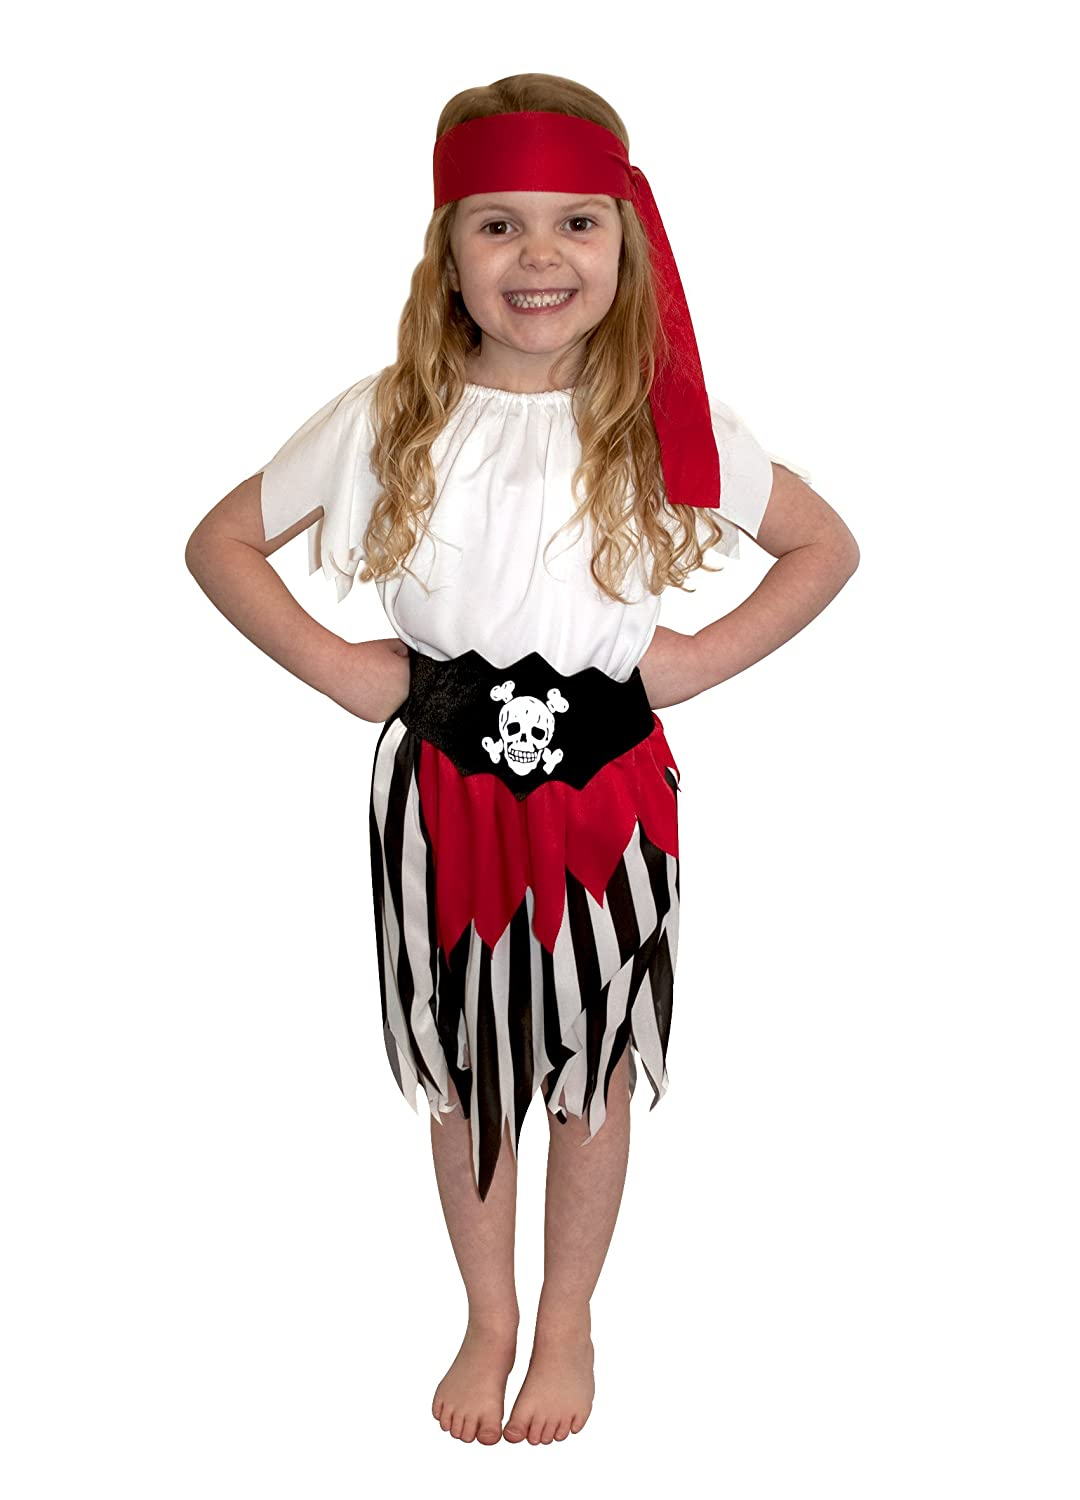 Girls Fancy Dress Costume Pirate Girl Medium White top Buccaneer Amazon.co.uk Toys u0026 Games  sc 1 st  Amazon UK & Girls Fancy Dress Costume Pirate Girl Medium White top Buccaneer ...